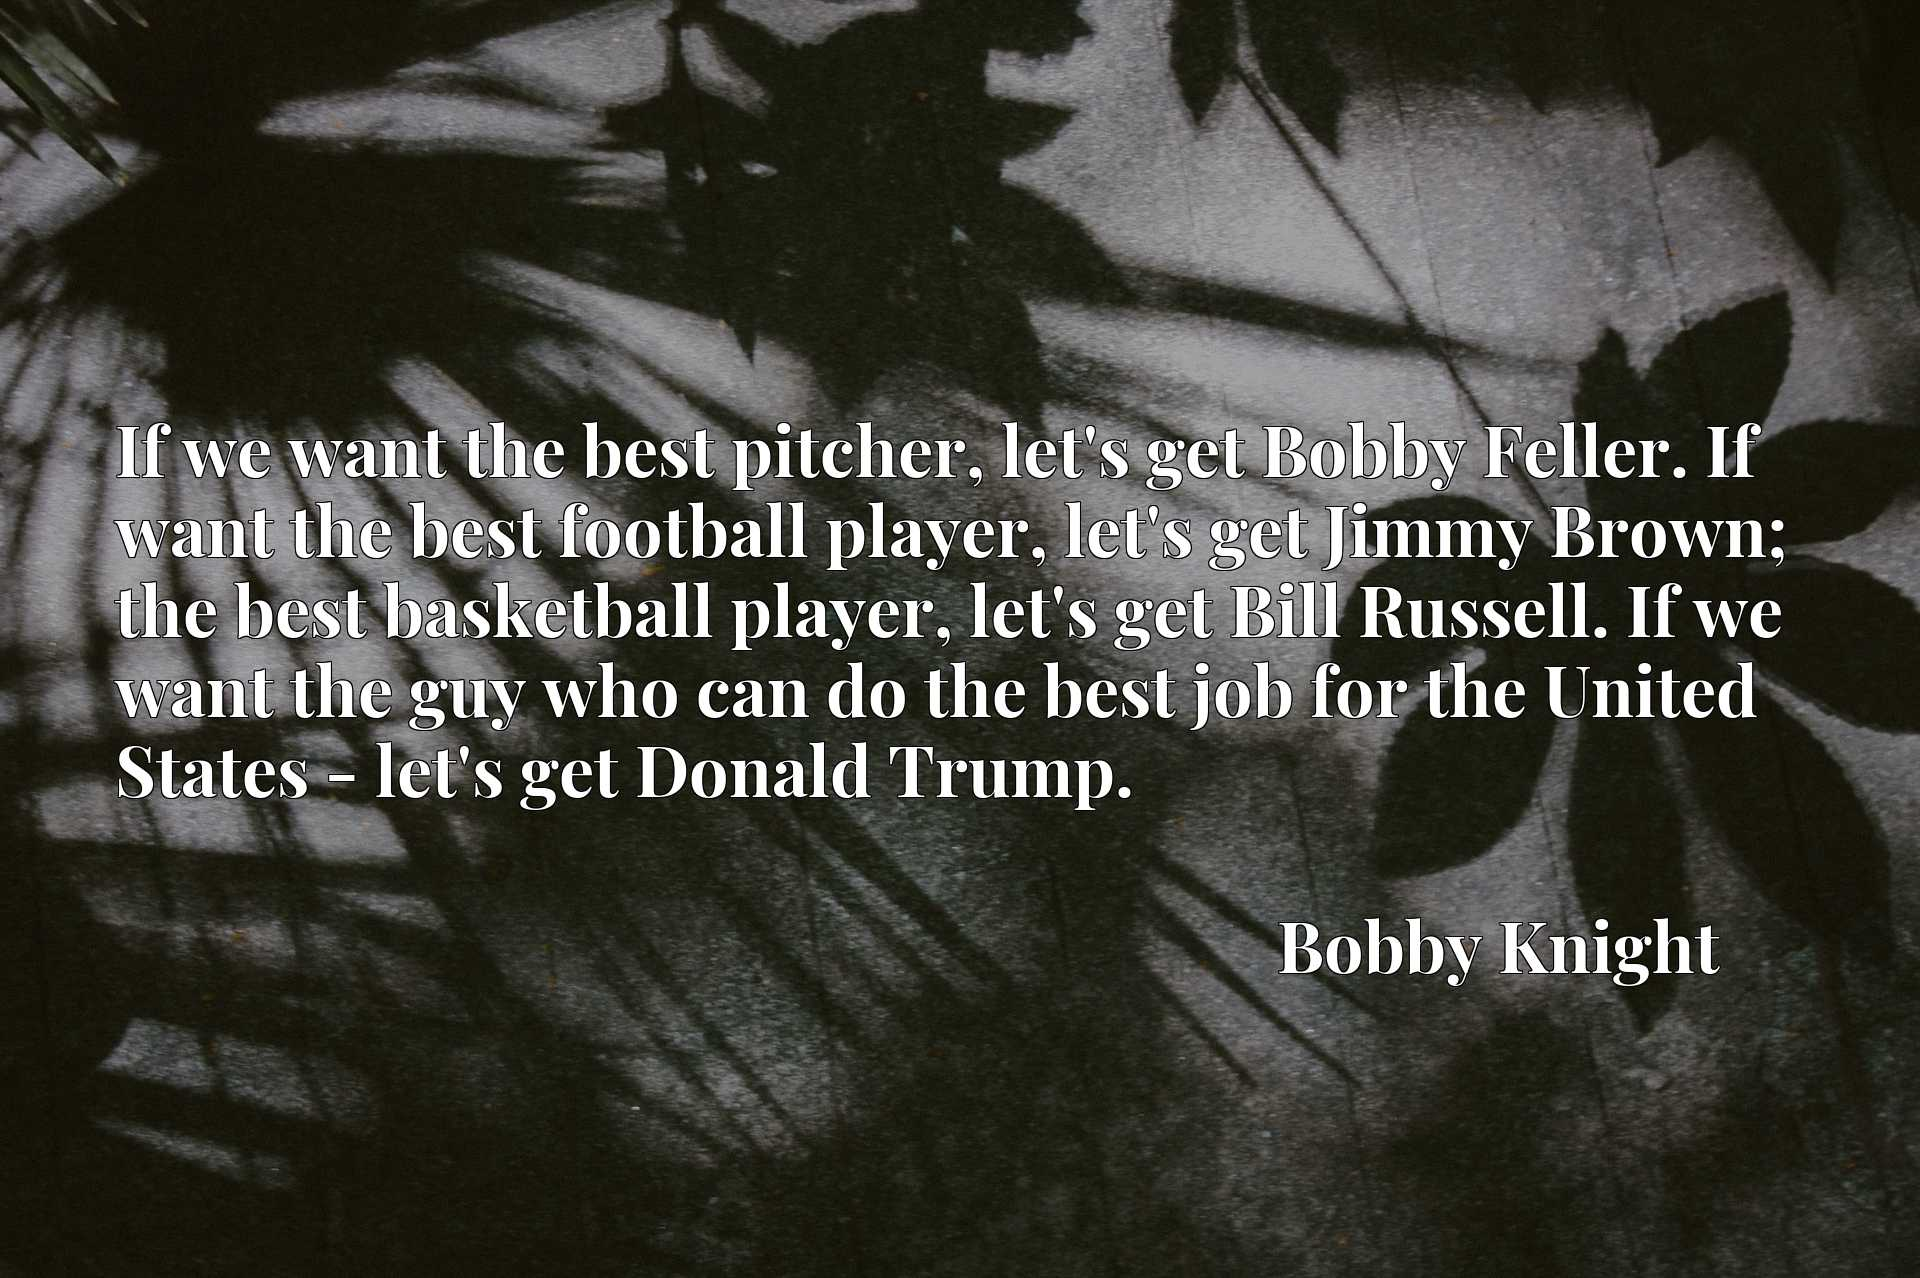 If we want the best pitcher, let's get Bobby Feller. If want the best football player, let's get Jimmy Brown; the best basketball player, let's get Bill Russell. If we want the guy who can do the best job for the United States - let's get Donald Trump.